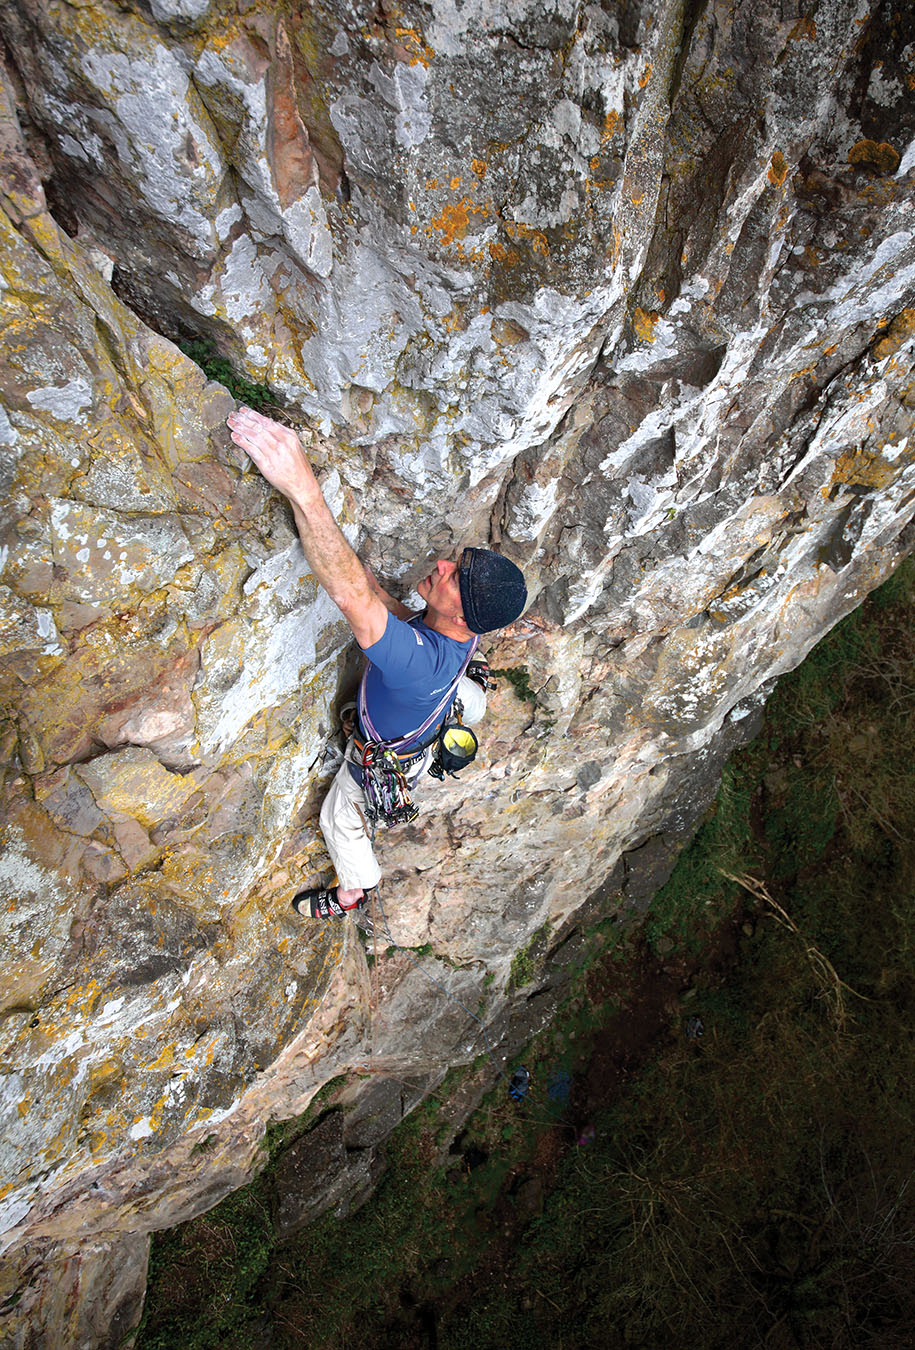 Tony Penning climbing the technical big soaring groove of The Don (E2 5c) on the Left-Hand Crag. Photo: © David Simmonite